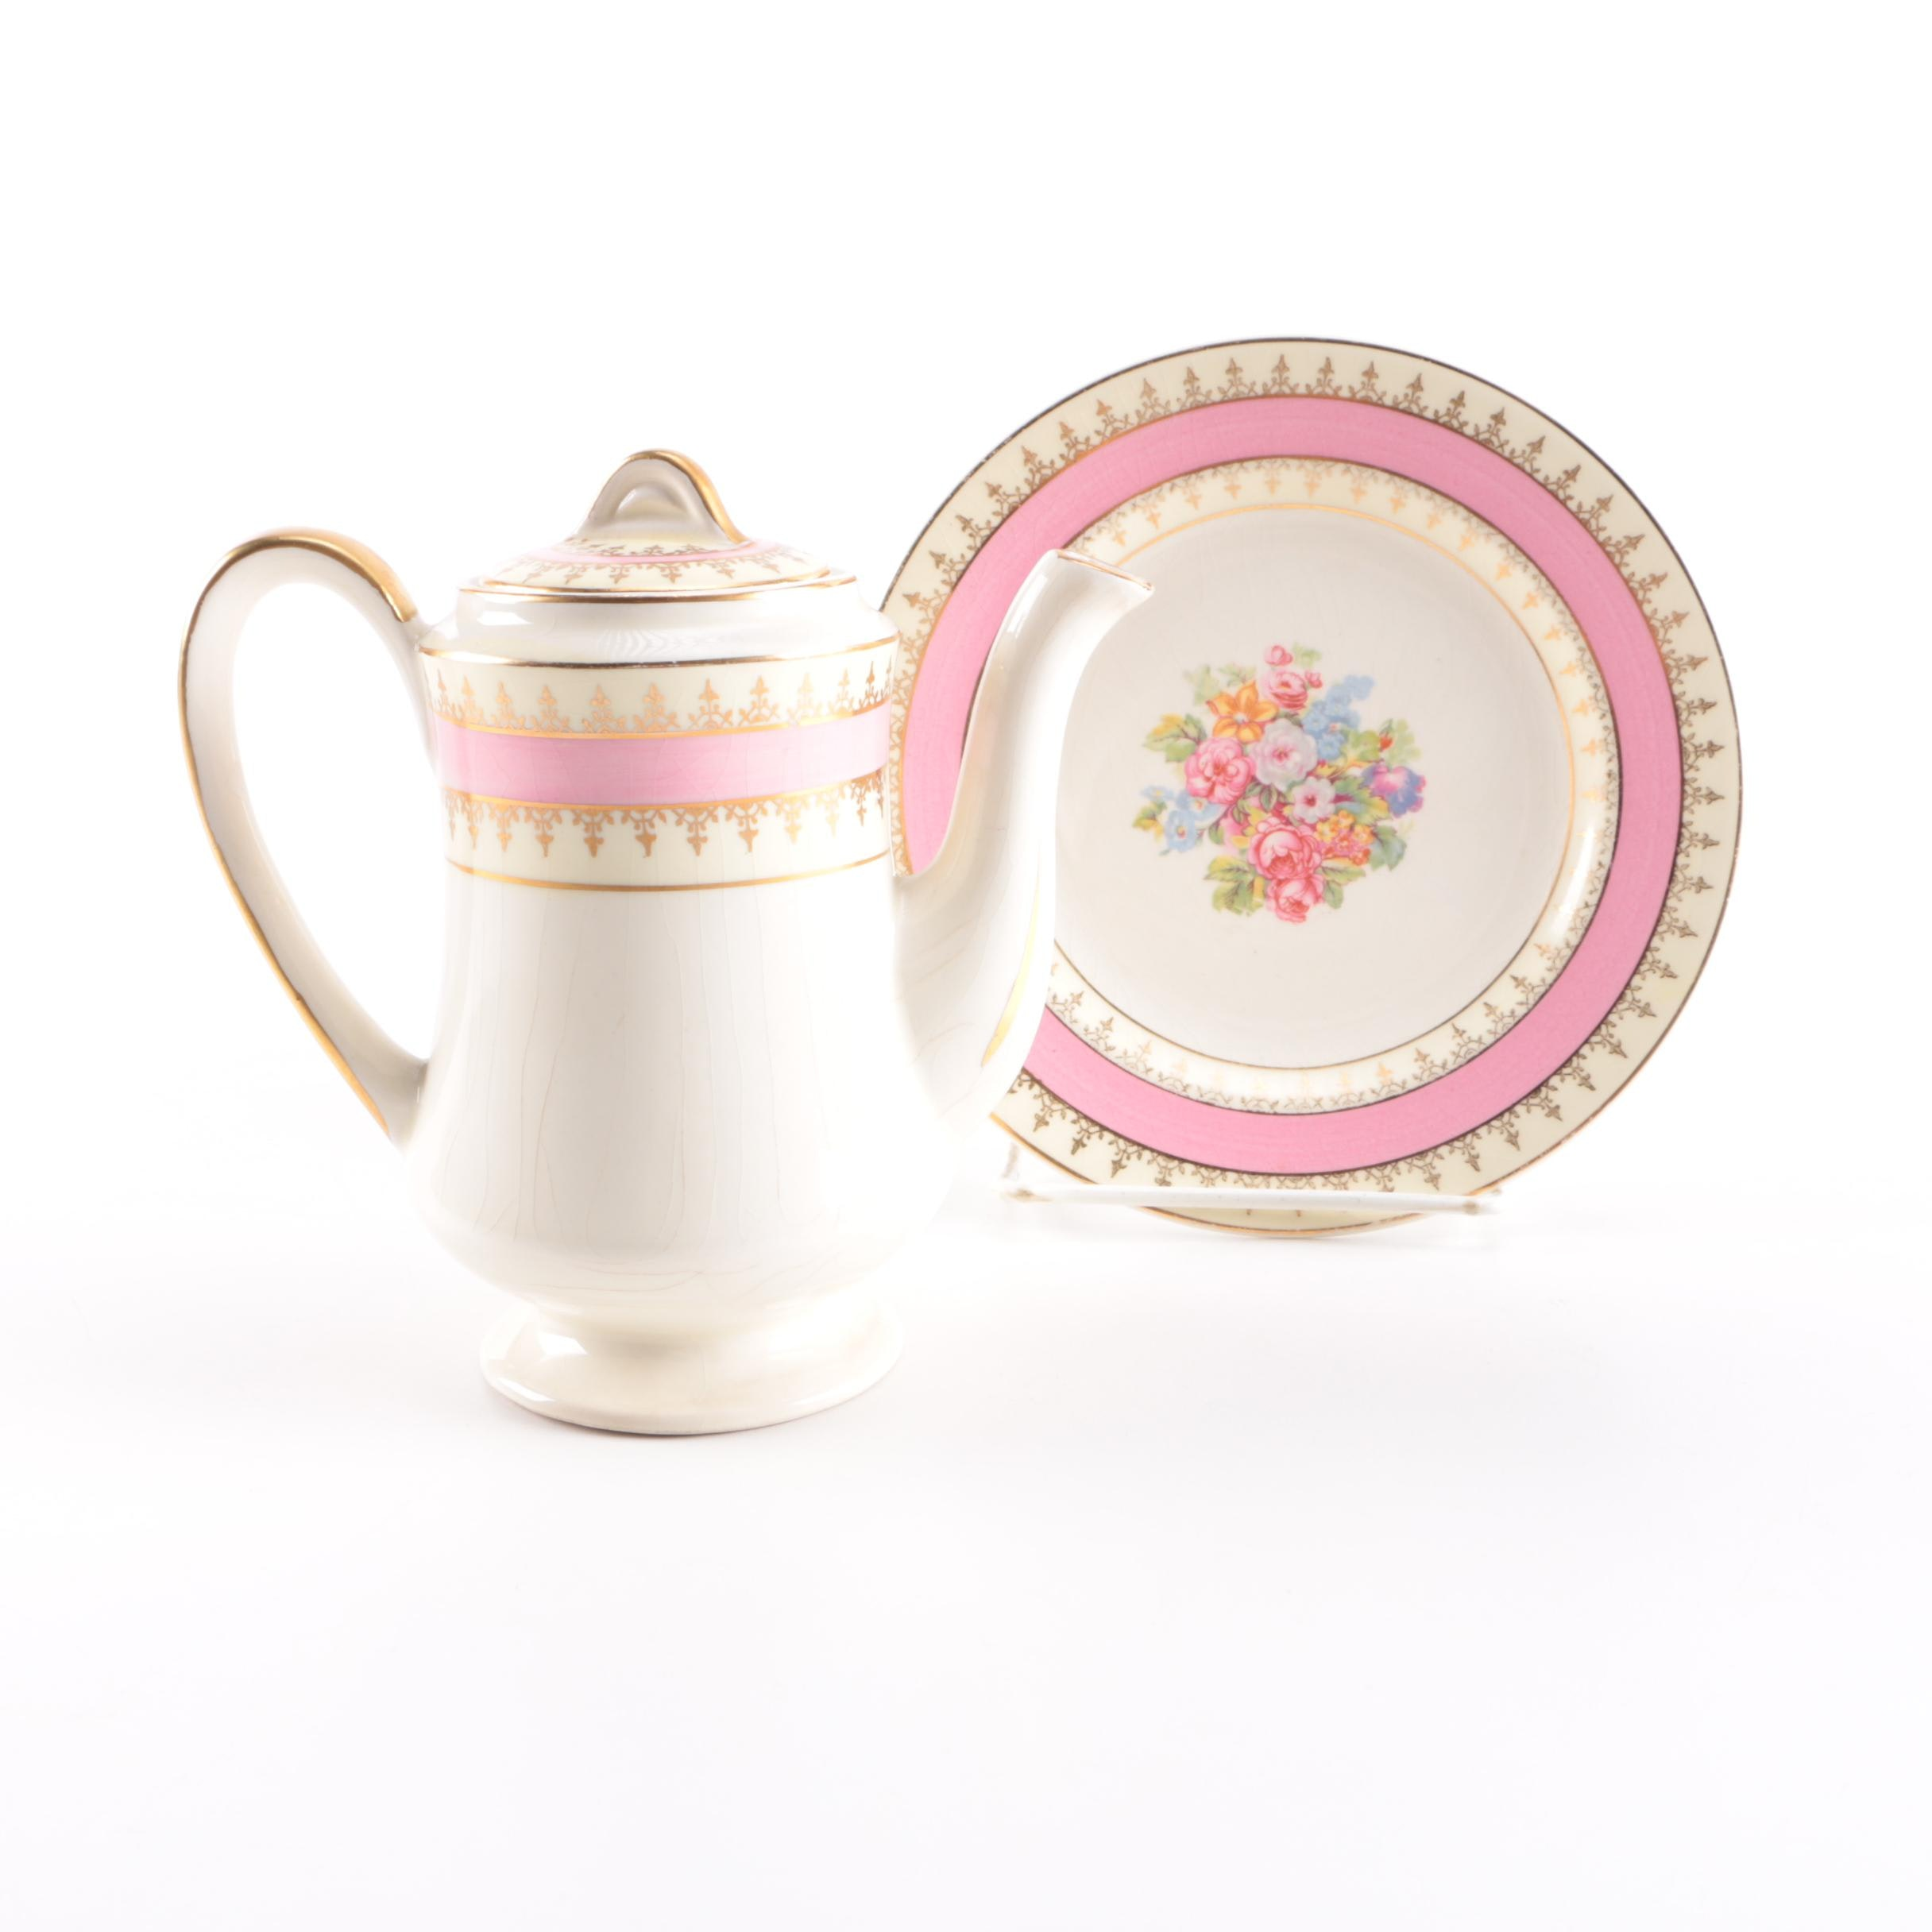 Steubenville Ceramic Teapot and Plate